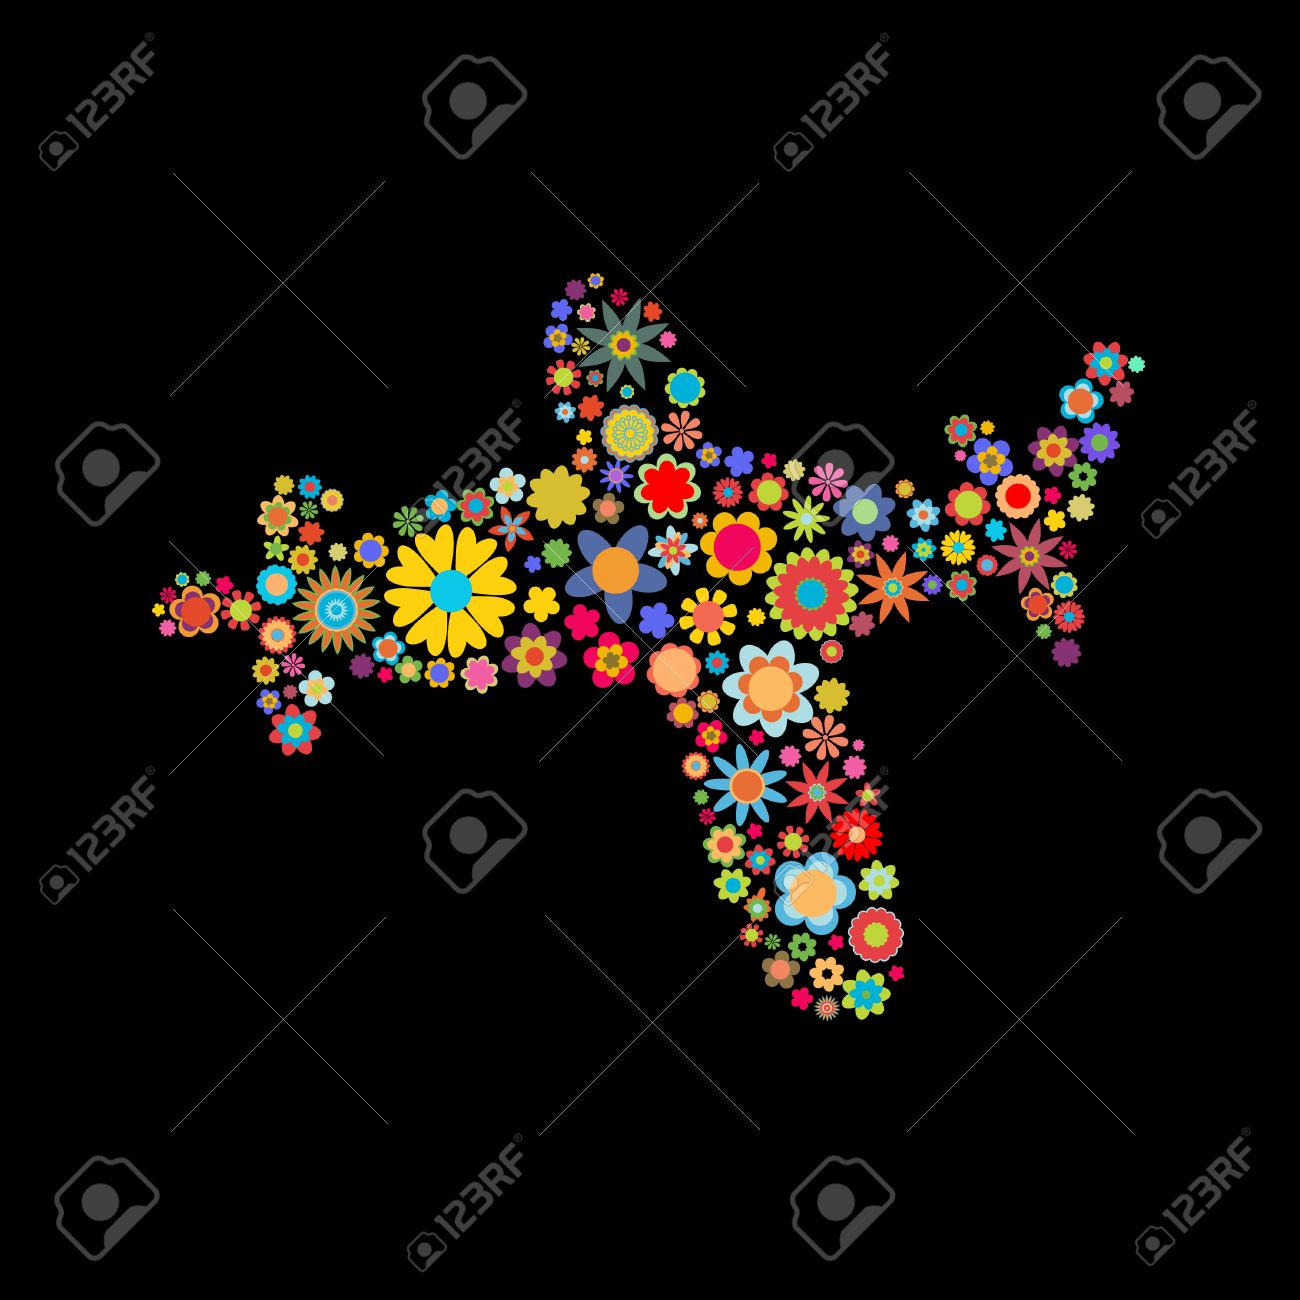 Vector illustration of airplane shape made up a lot of  multicolored small flowers on the black background Stock Vector - 4002721